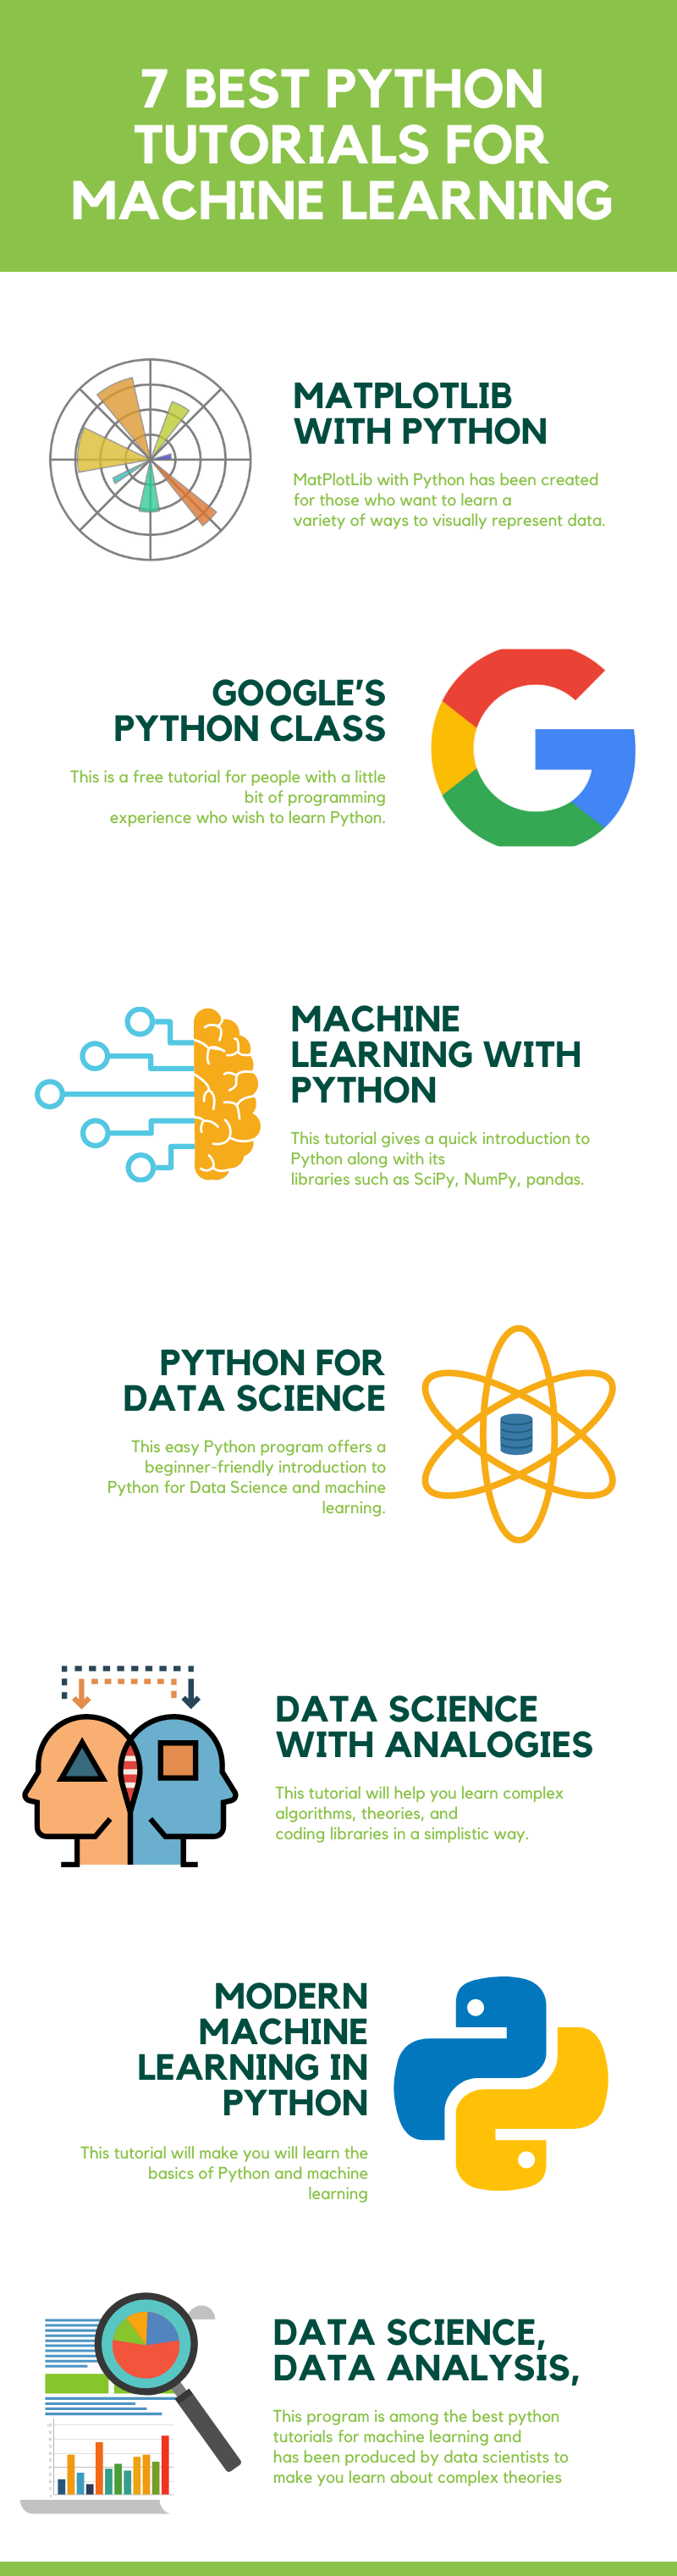 7 Best Python Tutorials for Machine Learning and Data Science